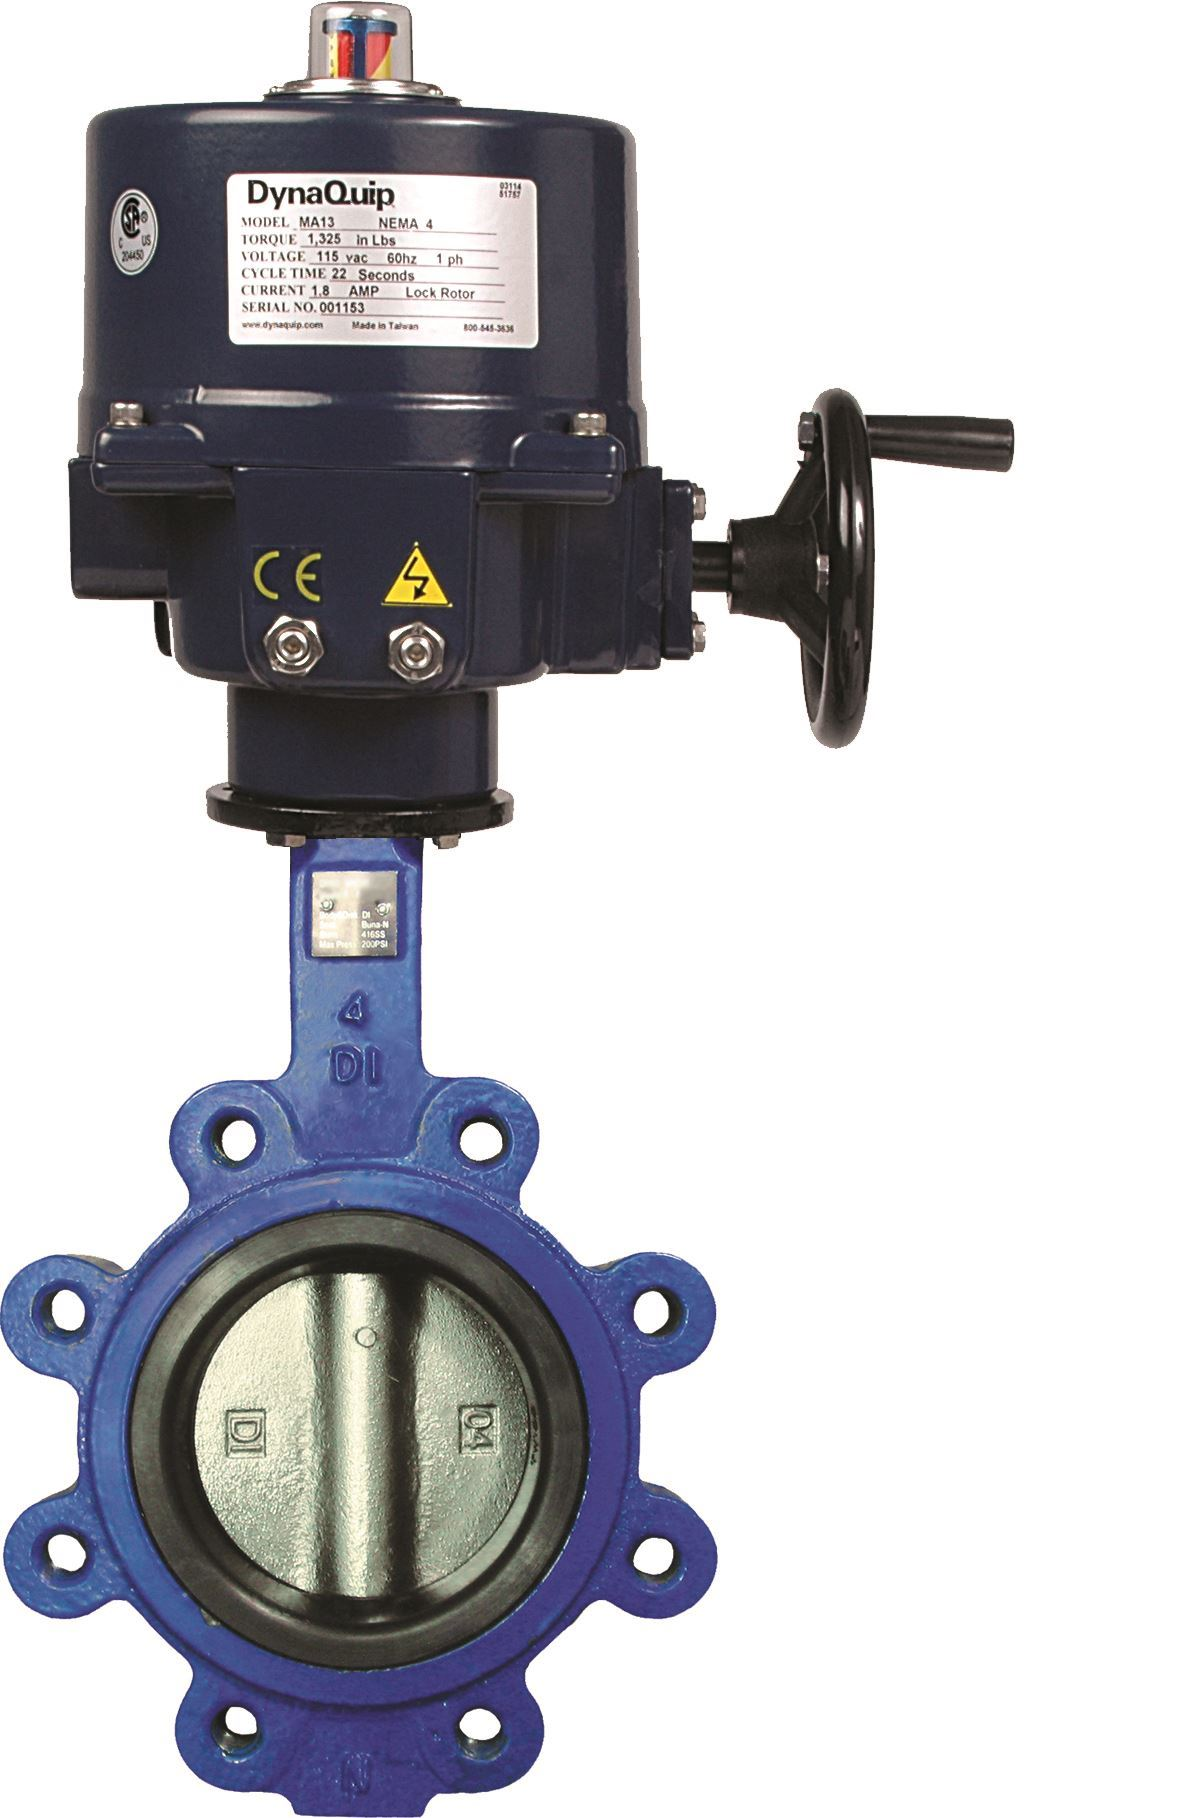 72F60903E07, DynaFly Series - Butterfly Valve with Electric Actuator - 700/722 Series